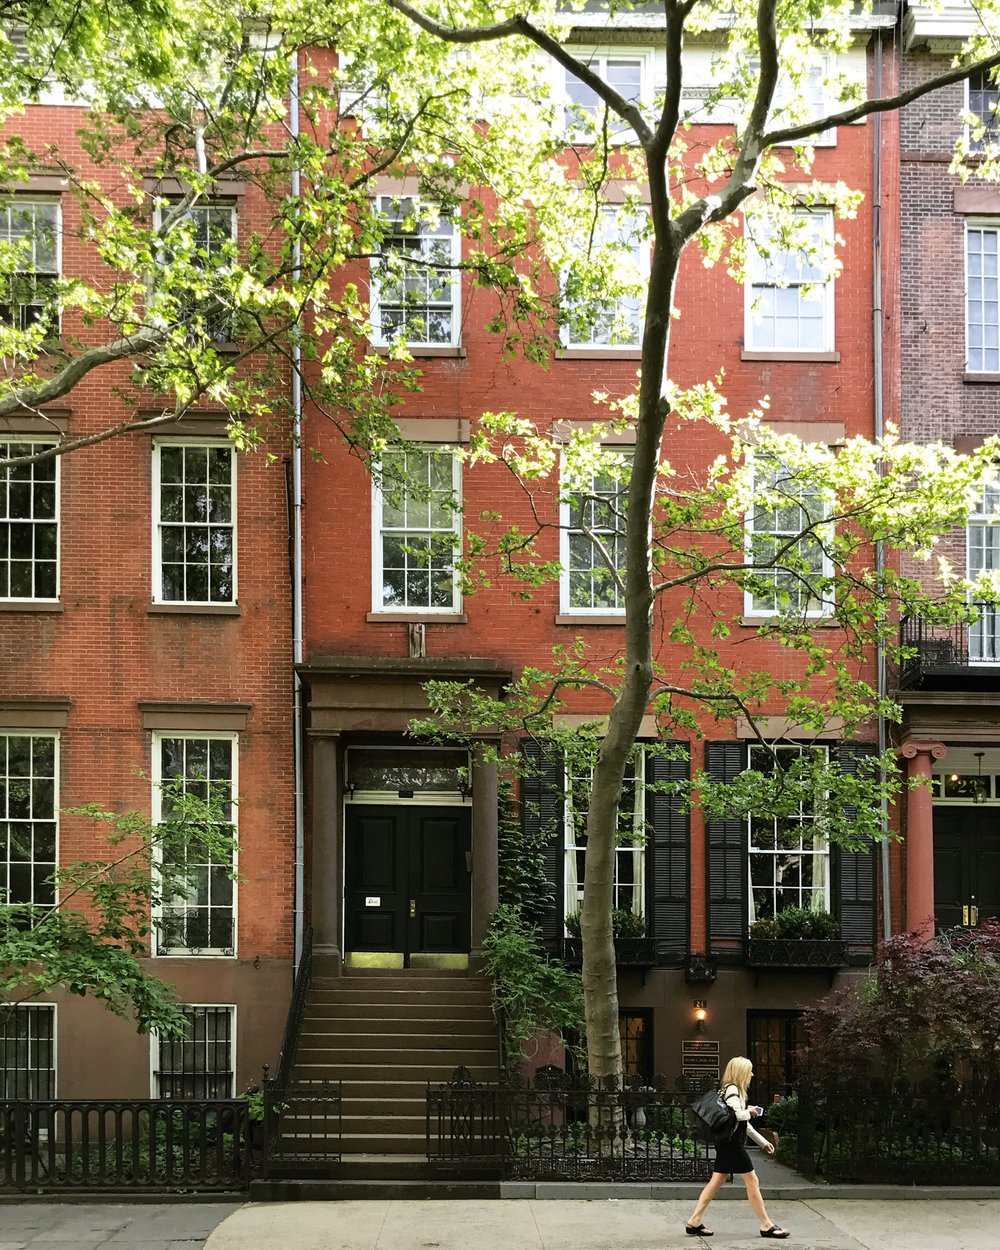 We stayed in the beautiful Greenwich Village neighborhood of Manhattan, right on the corner of Washington Square Park.